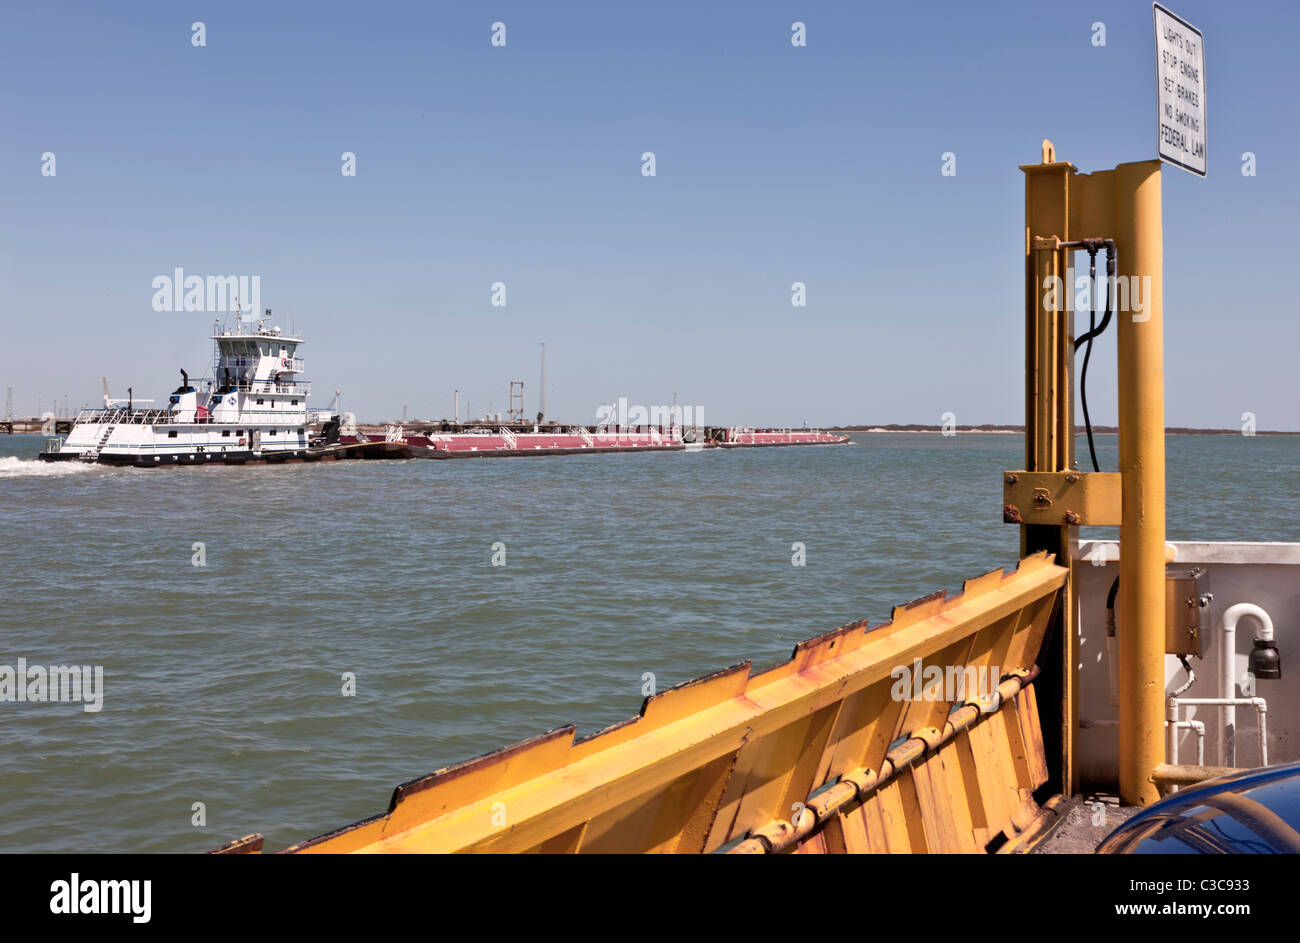 Tugboat pushing fuel barges, Corpus Ship Christi channel, - Stock Image